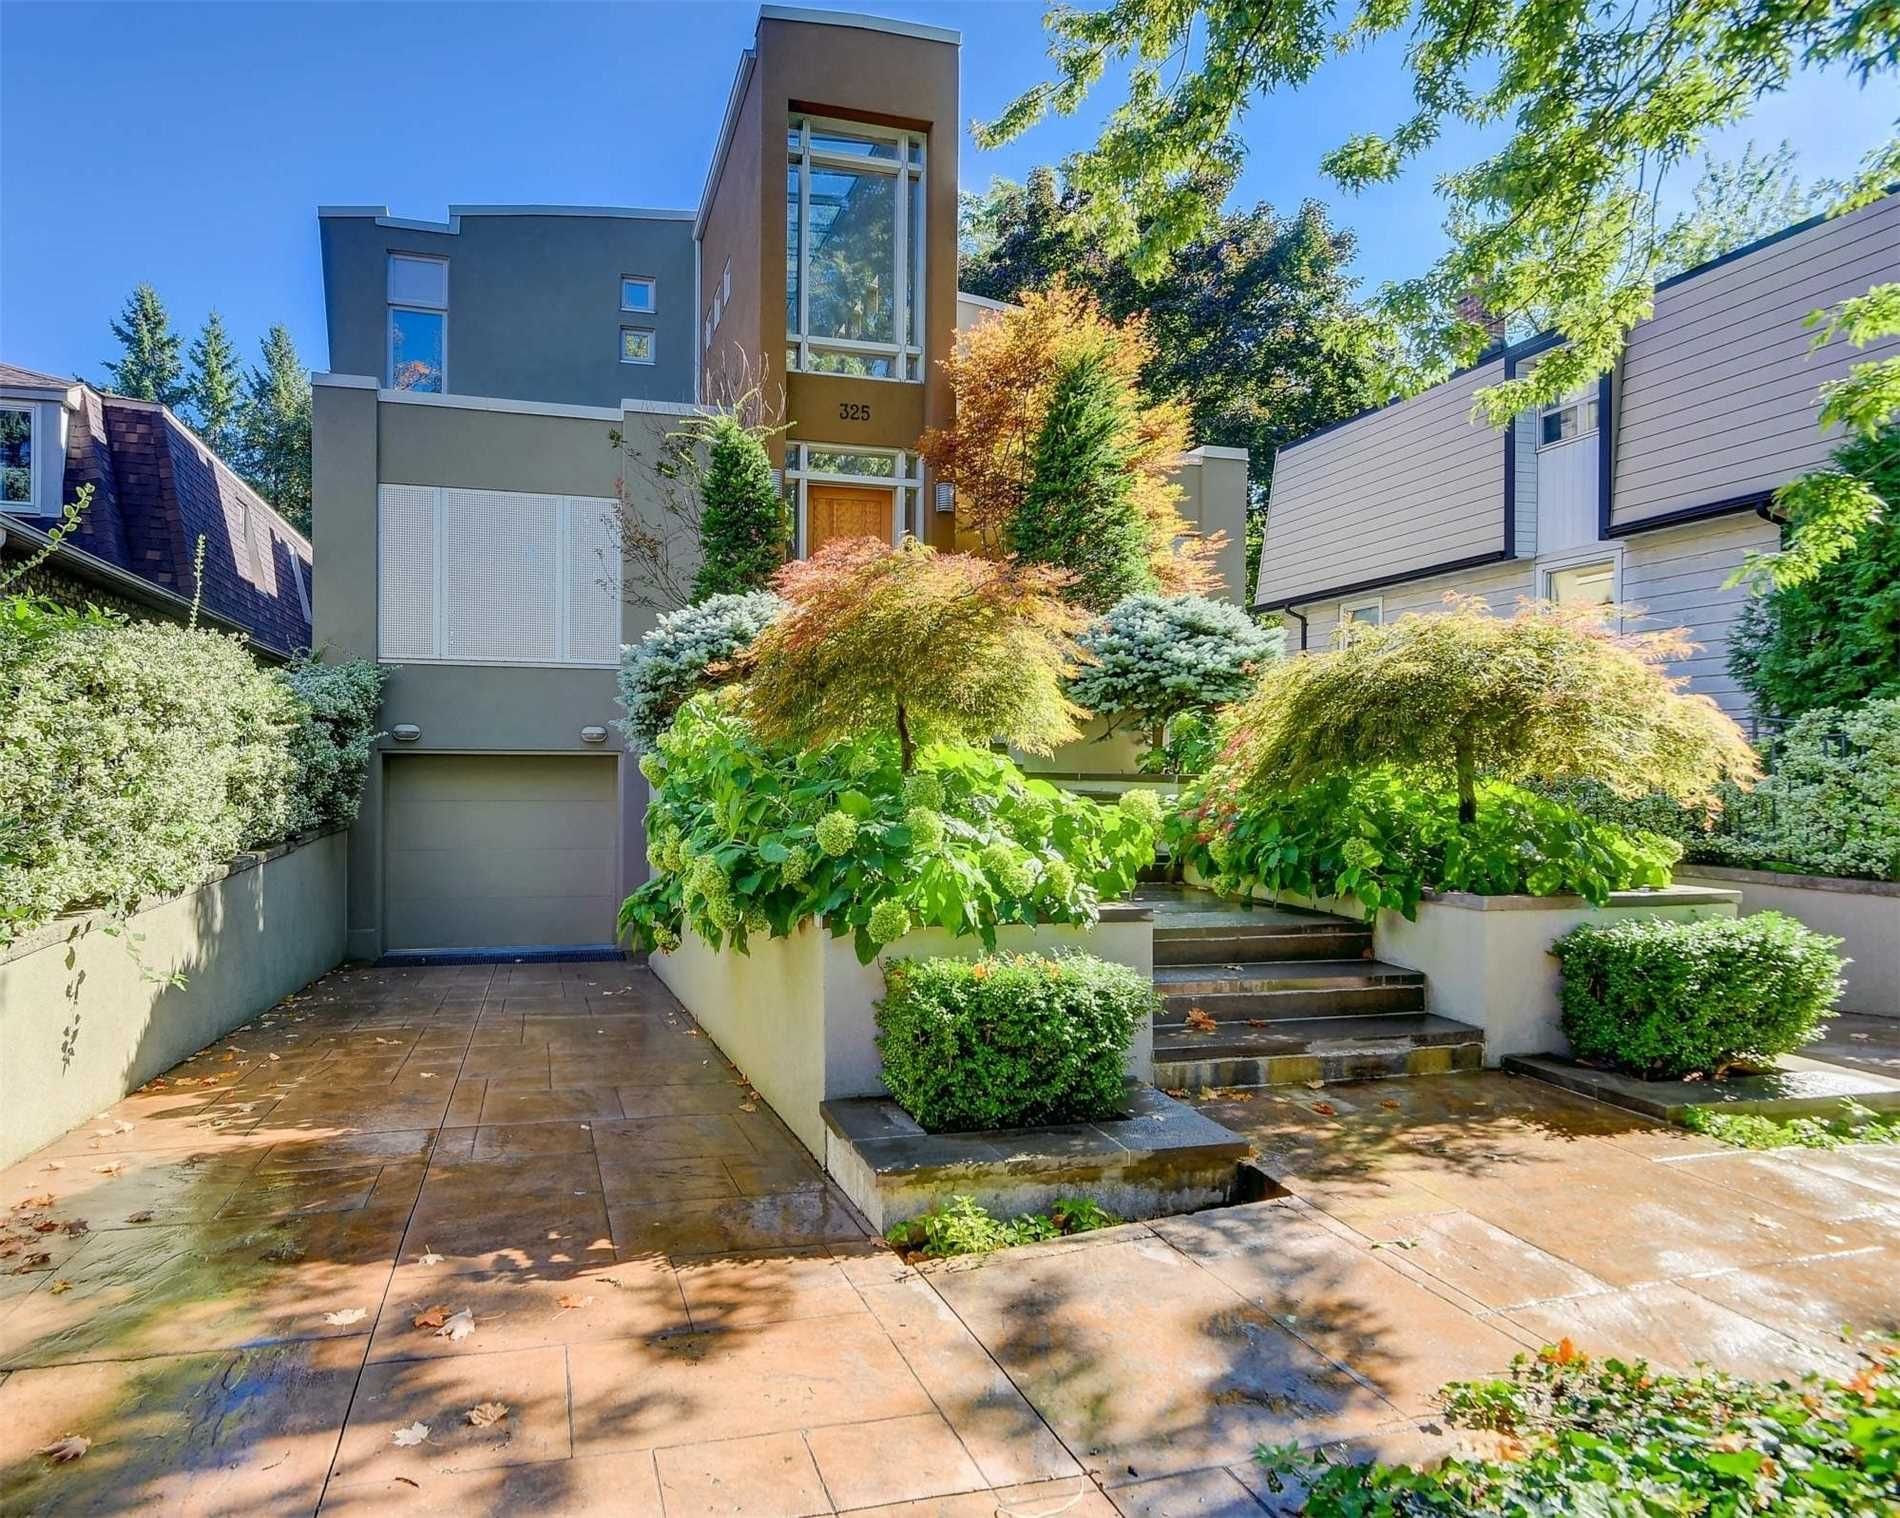 325 Hollywood Avenue for sale